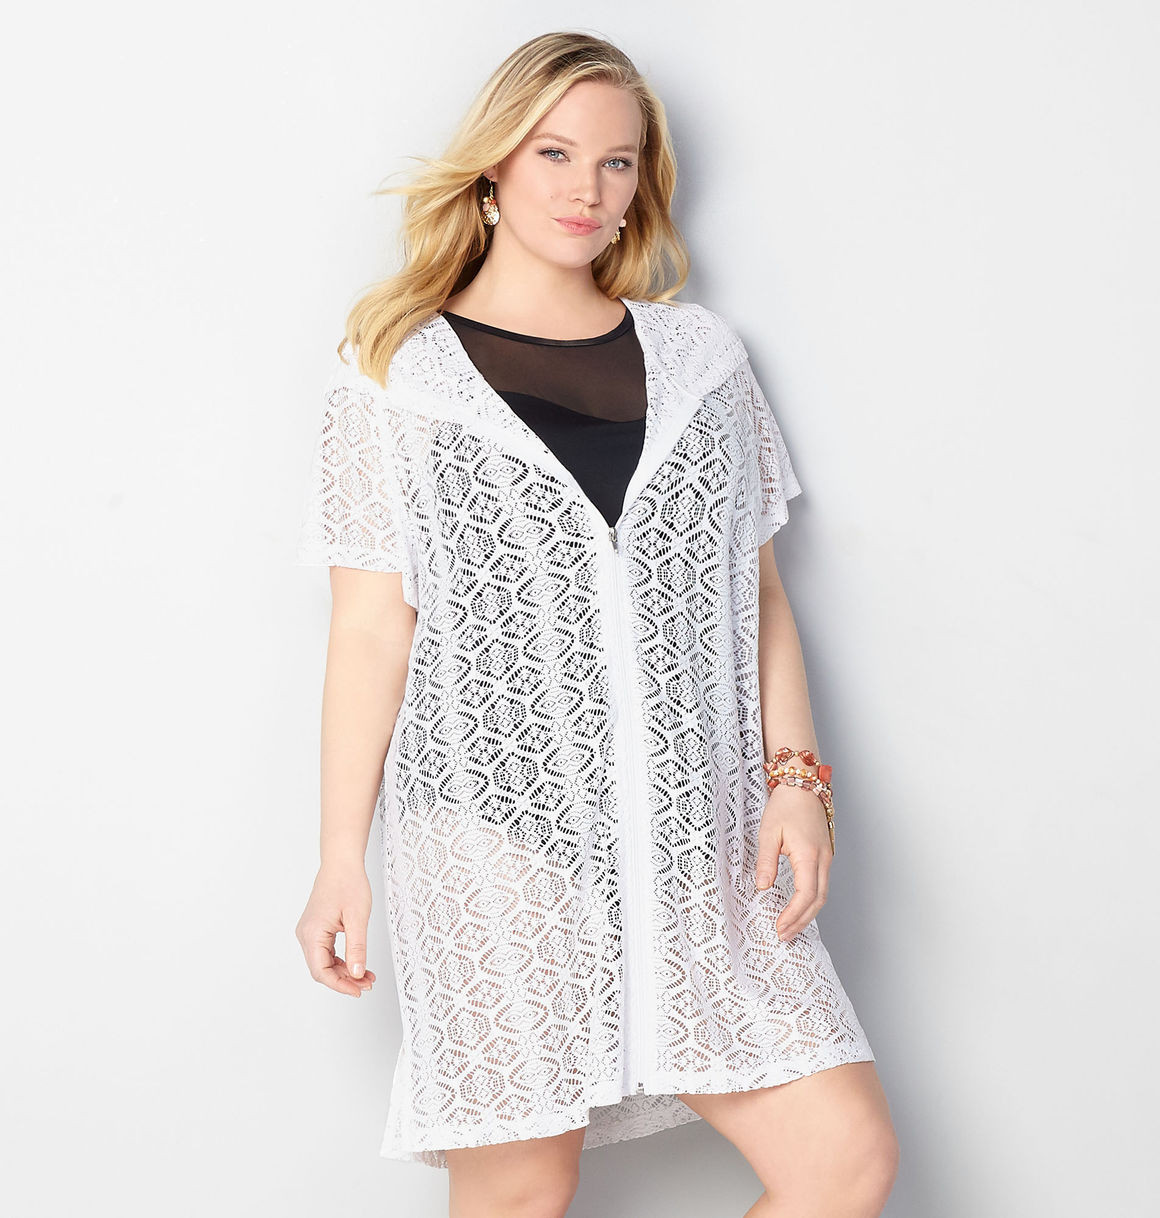 White Crochet Coverup Elegant White Crochet Zip Hooded Cover Up Plus Size Cover Up Avenue Of Unique 50 Models White Crochet Coverup